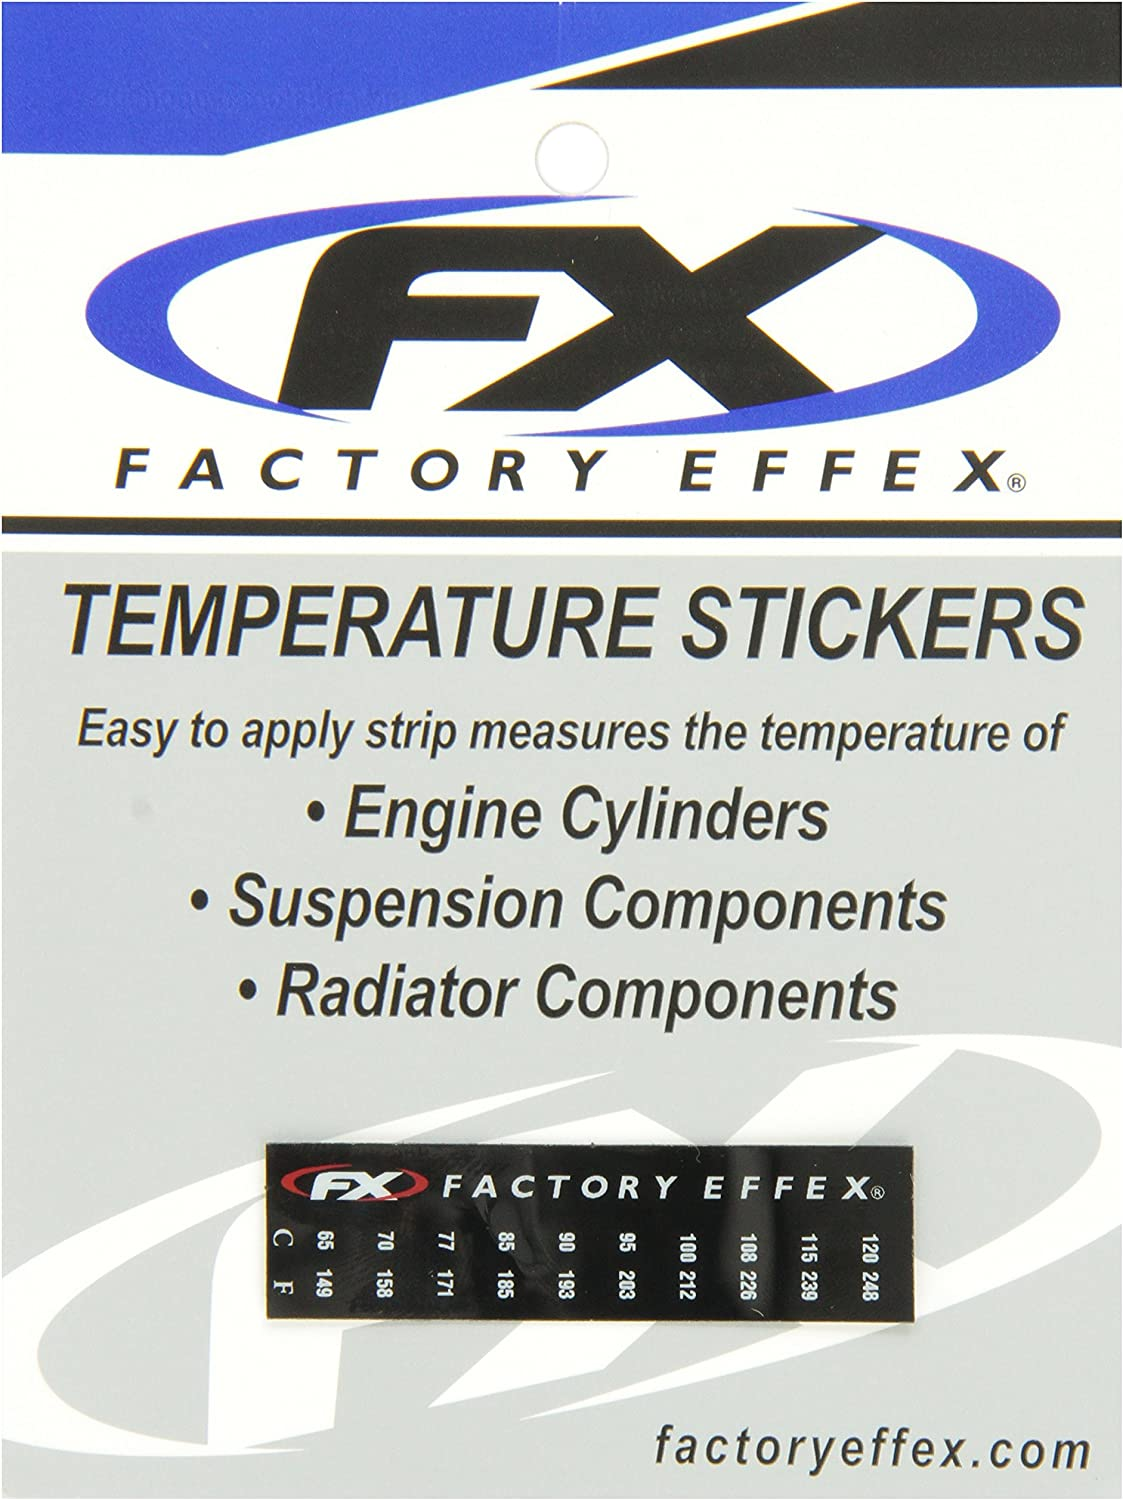 Factory Effex 08-90225 Temp Specialty Sticker, Pack of 3